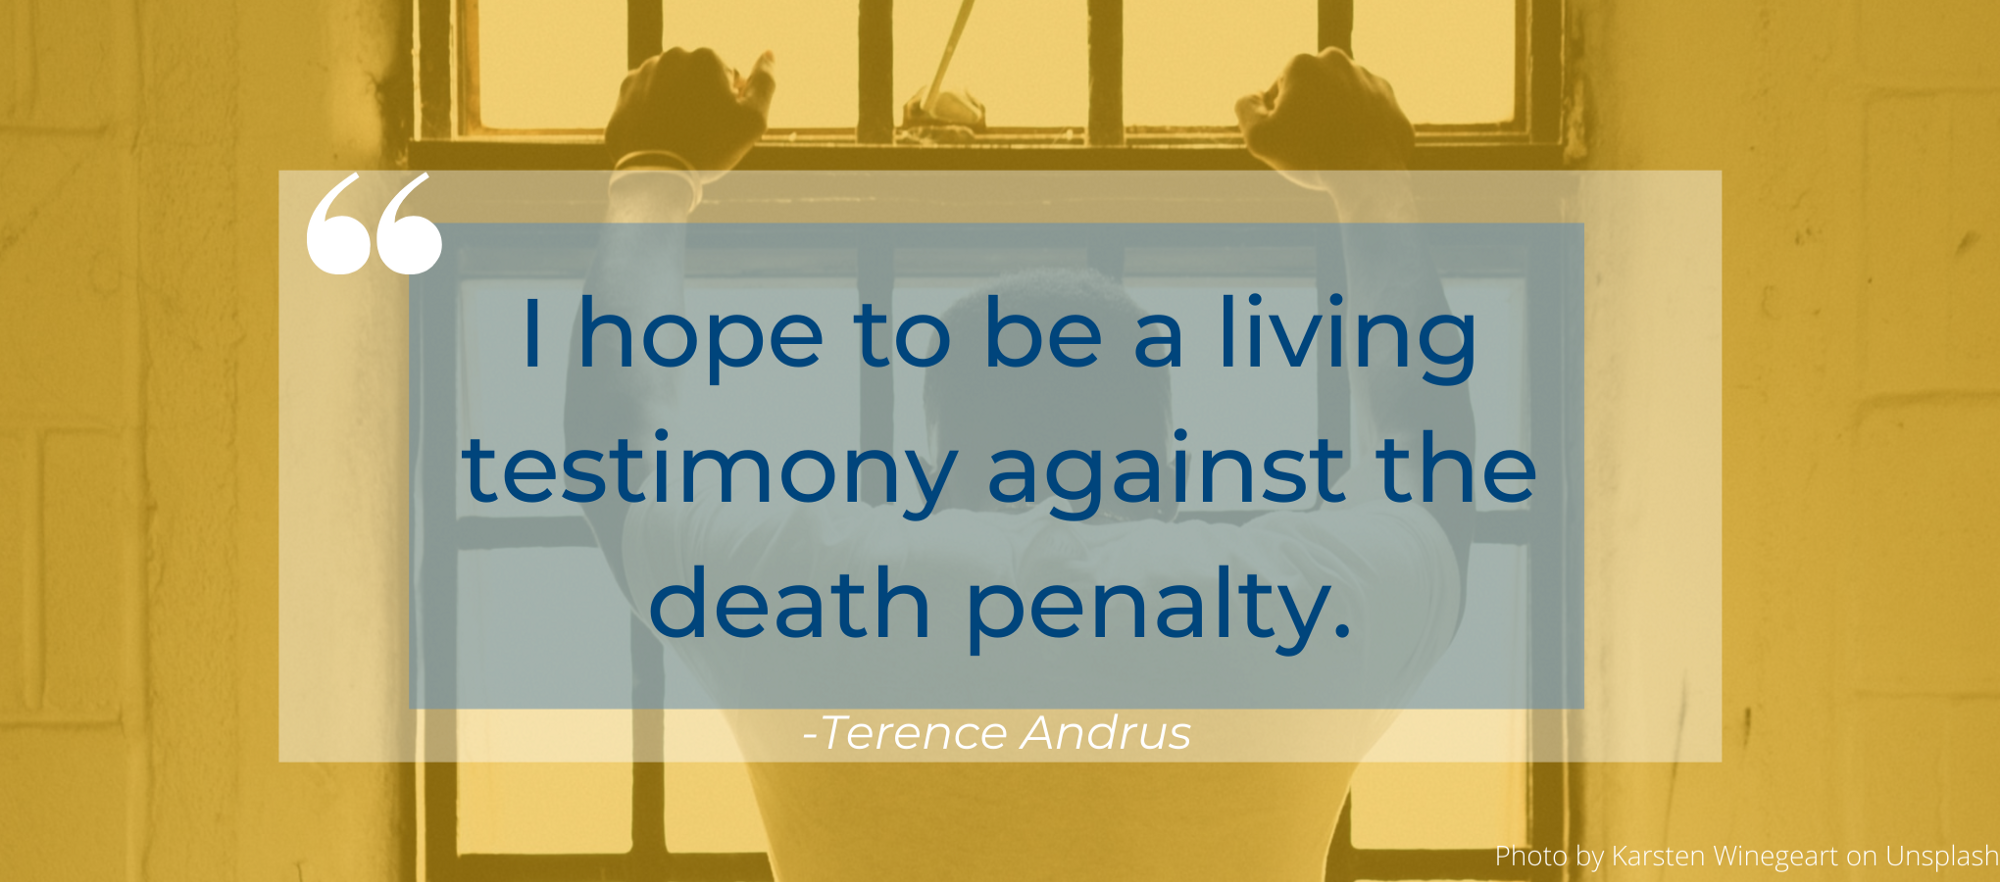 """Image of man holding bars in the background, with quote: """"I hope to be a living testimony against the death penalty"""""""